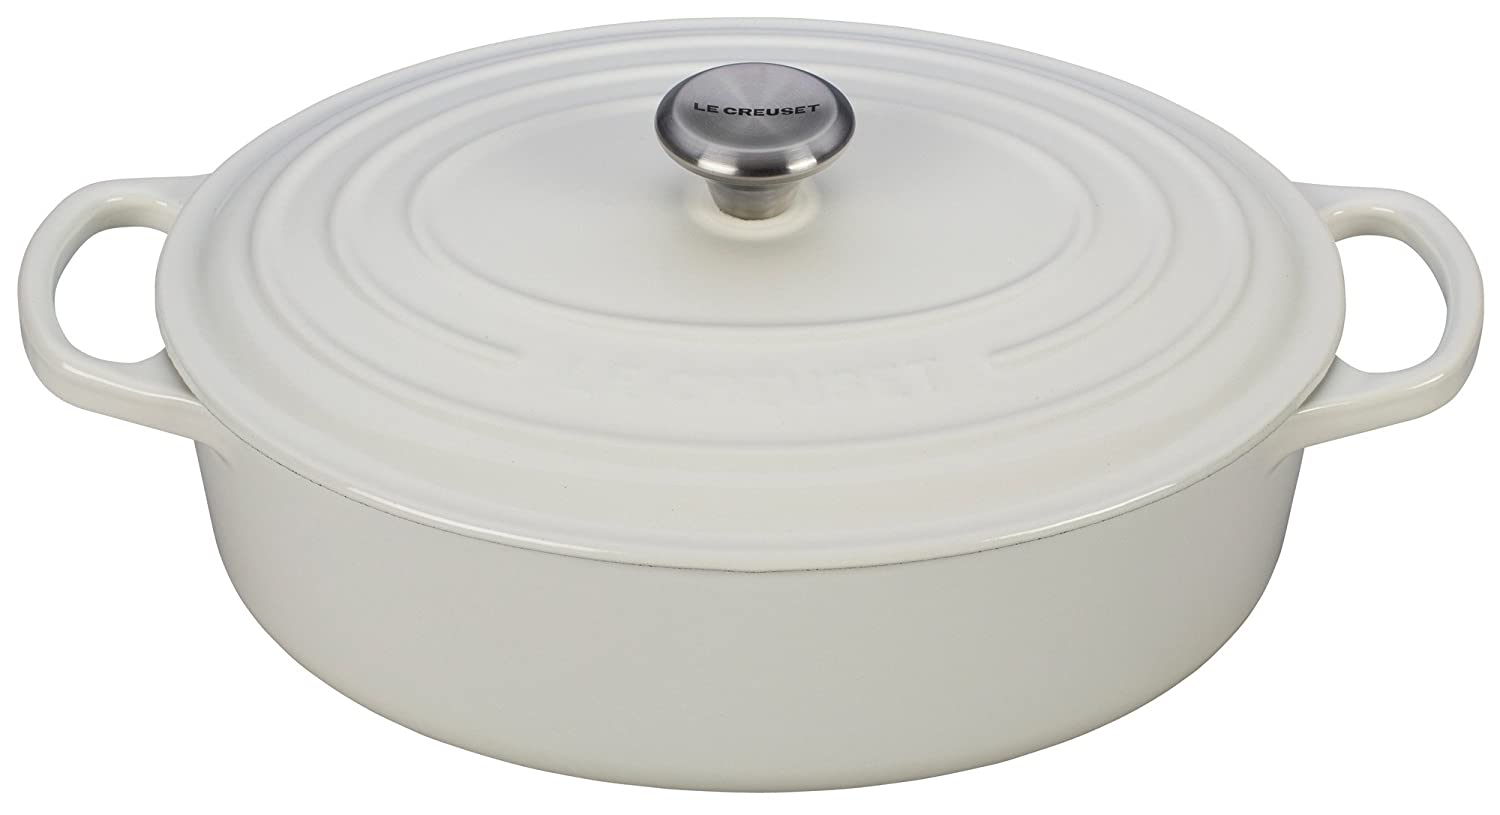 Le Creuset Enameled Cast Iron Signature Oval Dutch French Oven, 2 3/4 quart, White